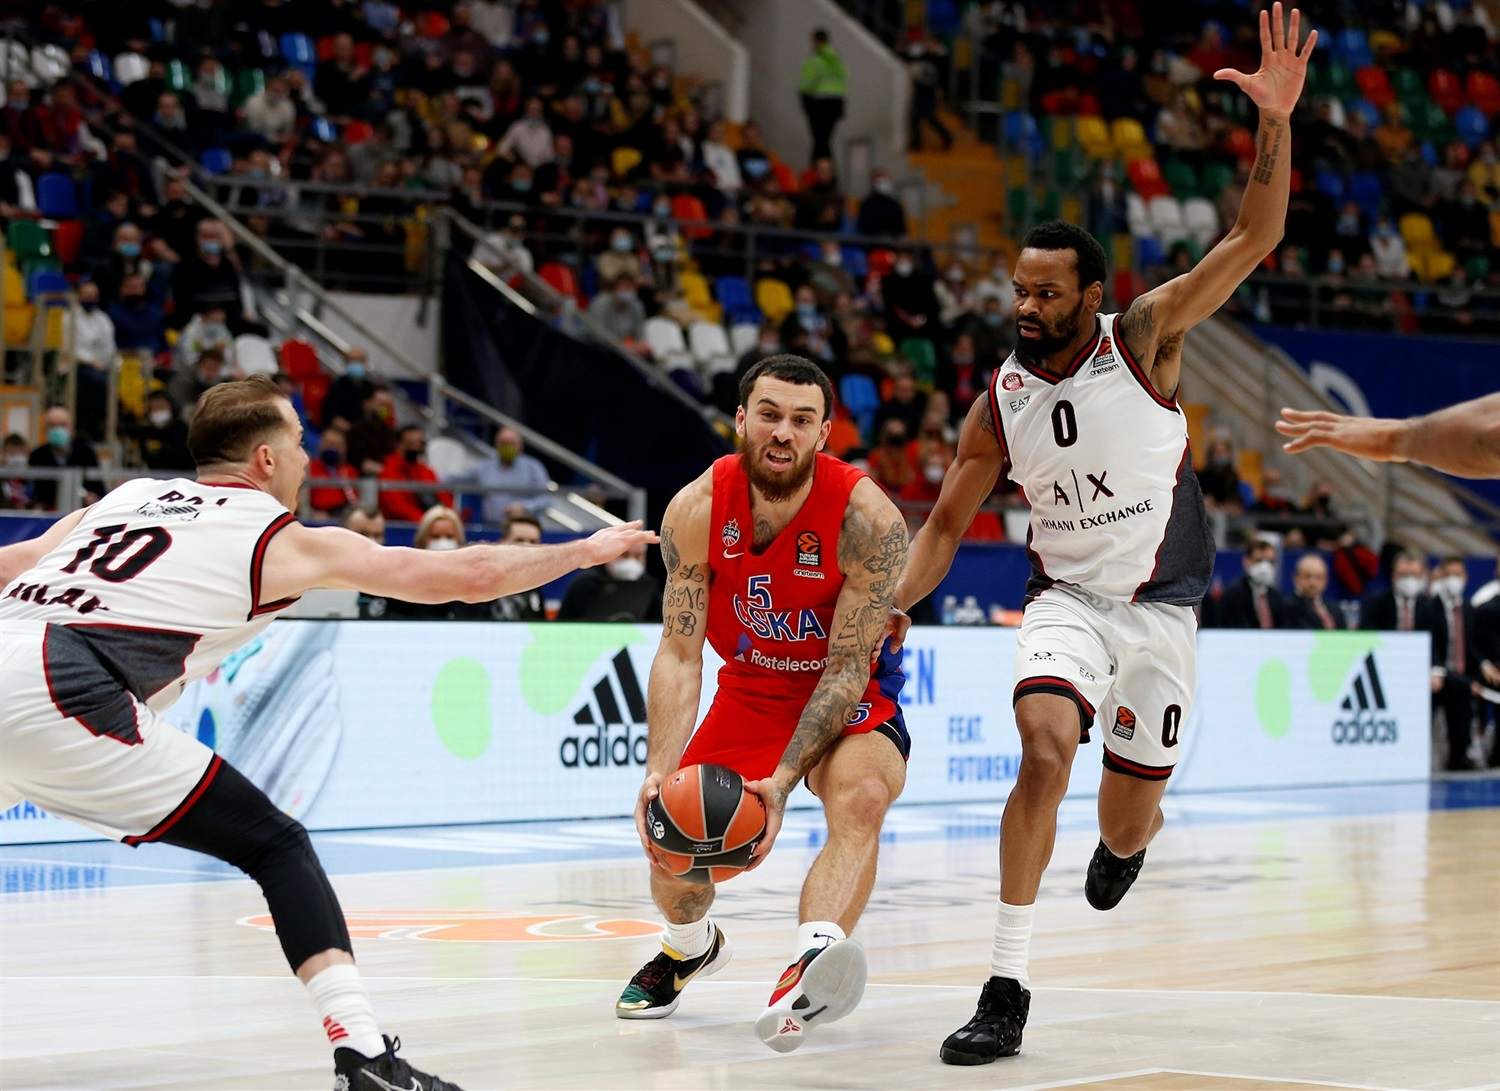 Mike Janes - CSKA Moscow - EB20